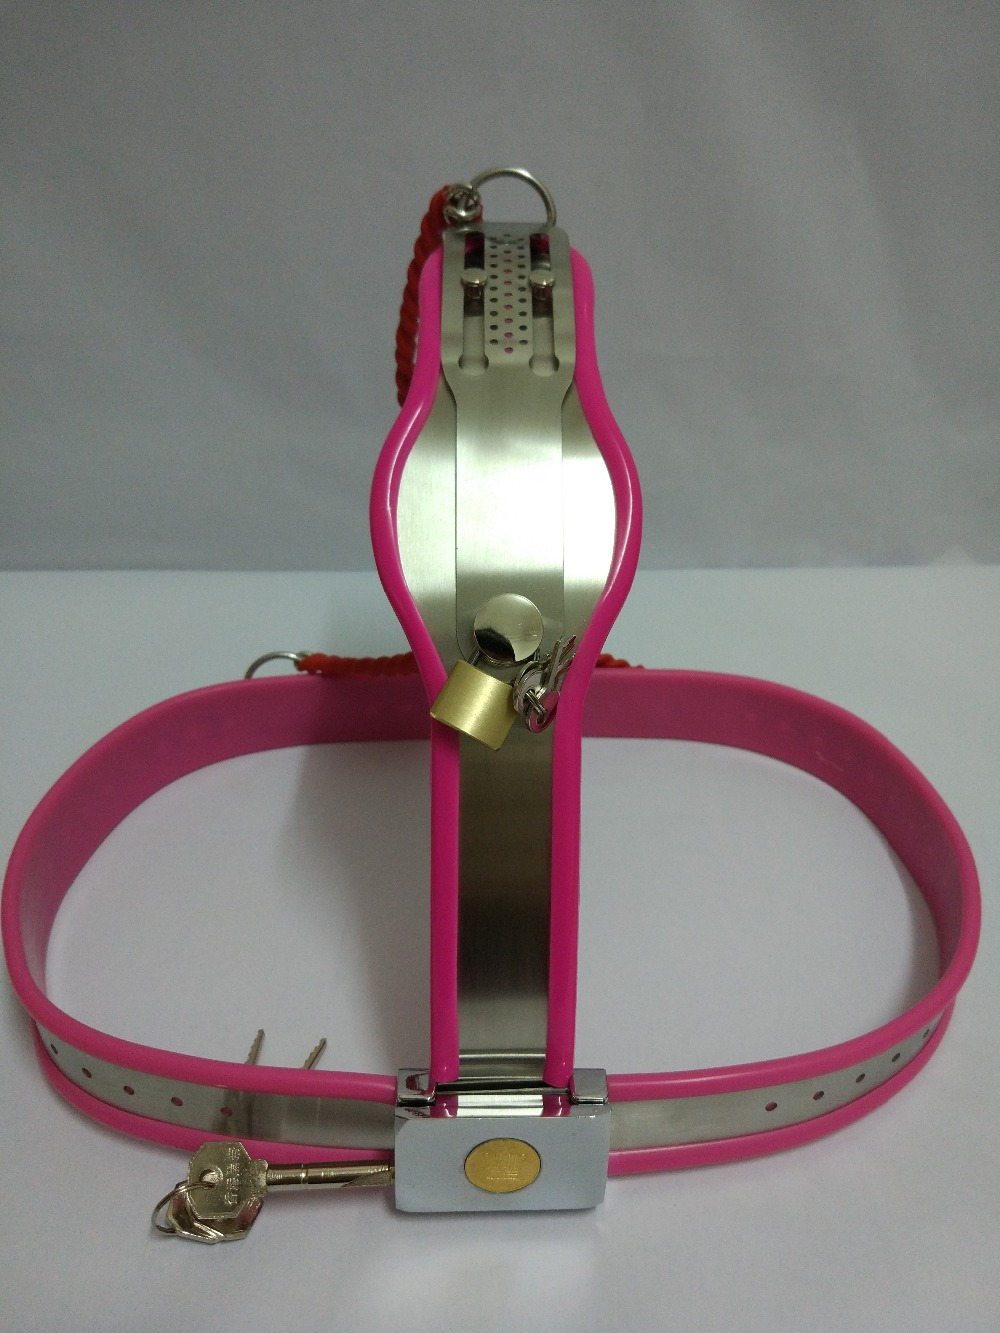 Sex tools shop for sale stainless steel female chastity device belt adult sex toys bdsm fetish bondage toys sextoys for women. adult games sexy latex device sex fetish toys hot sale rubber hanging neck chest tight wrapped tools for women